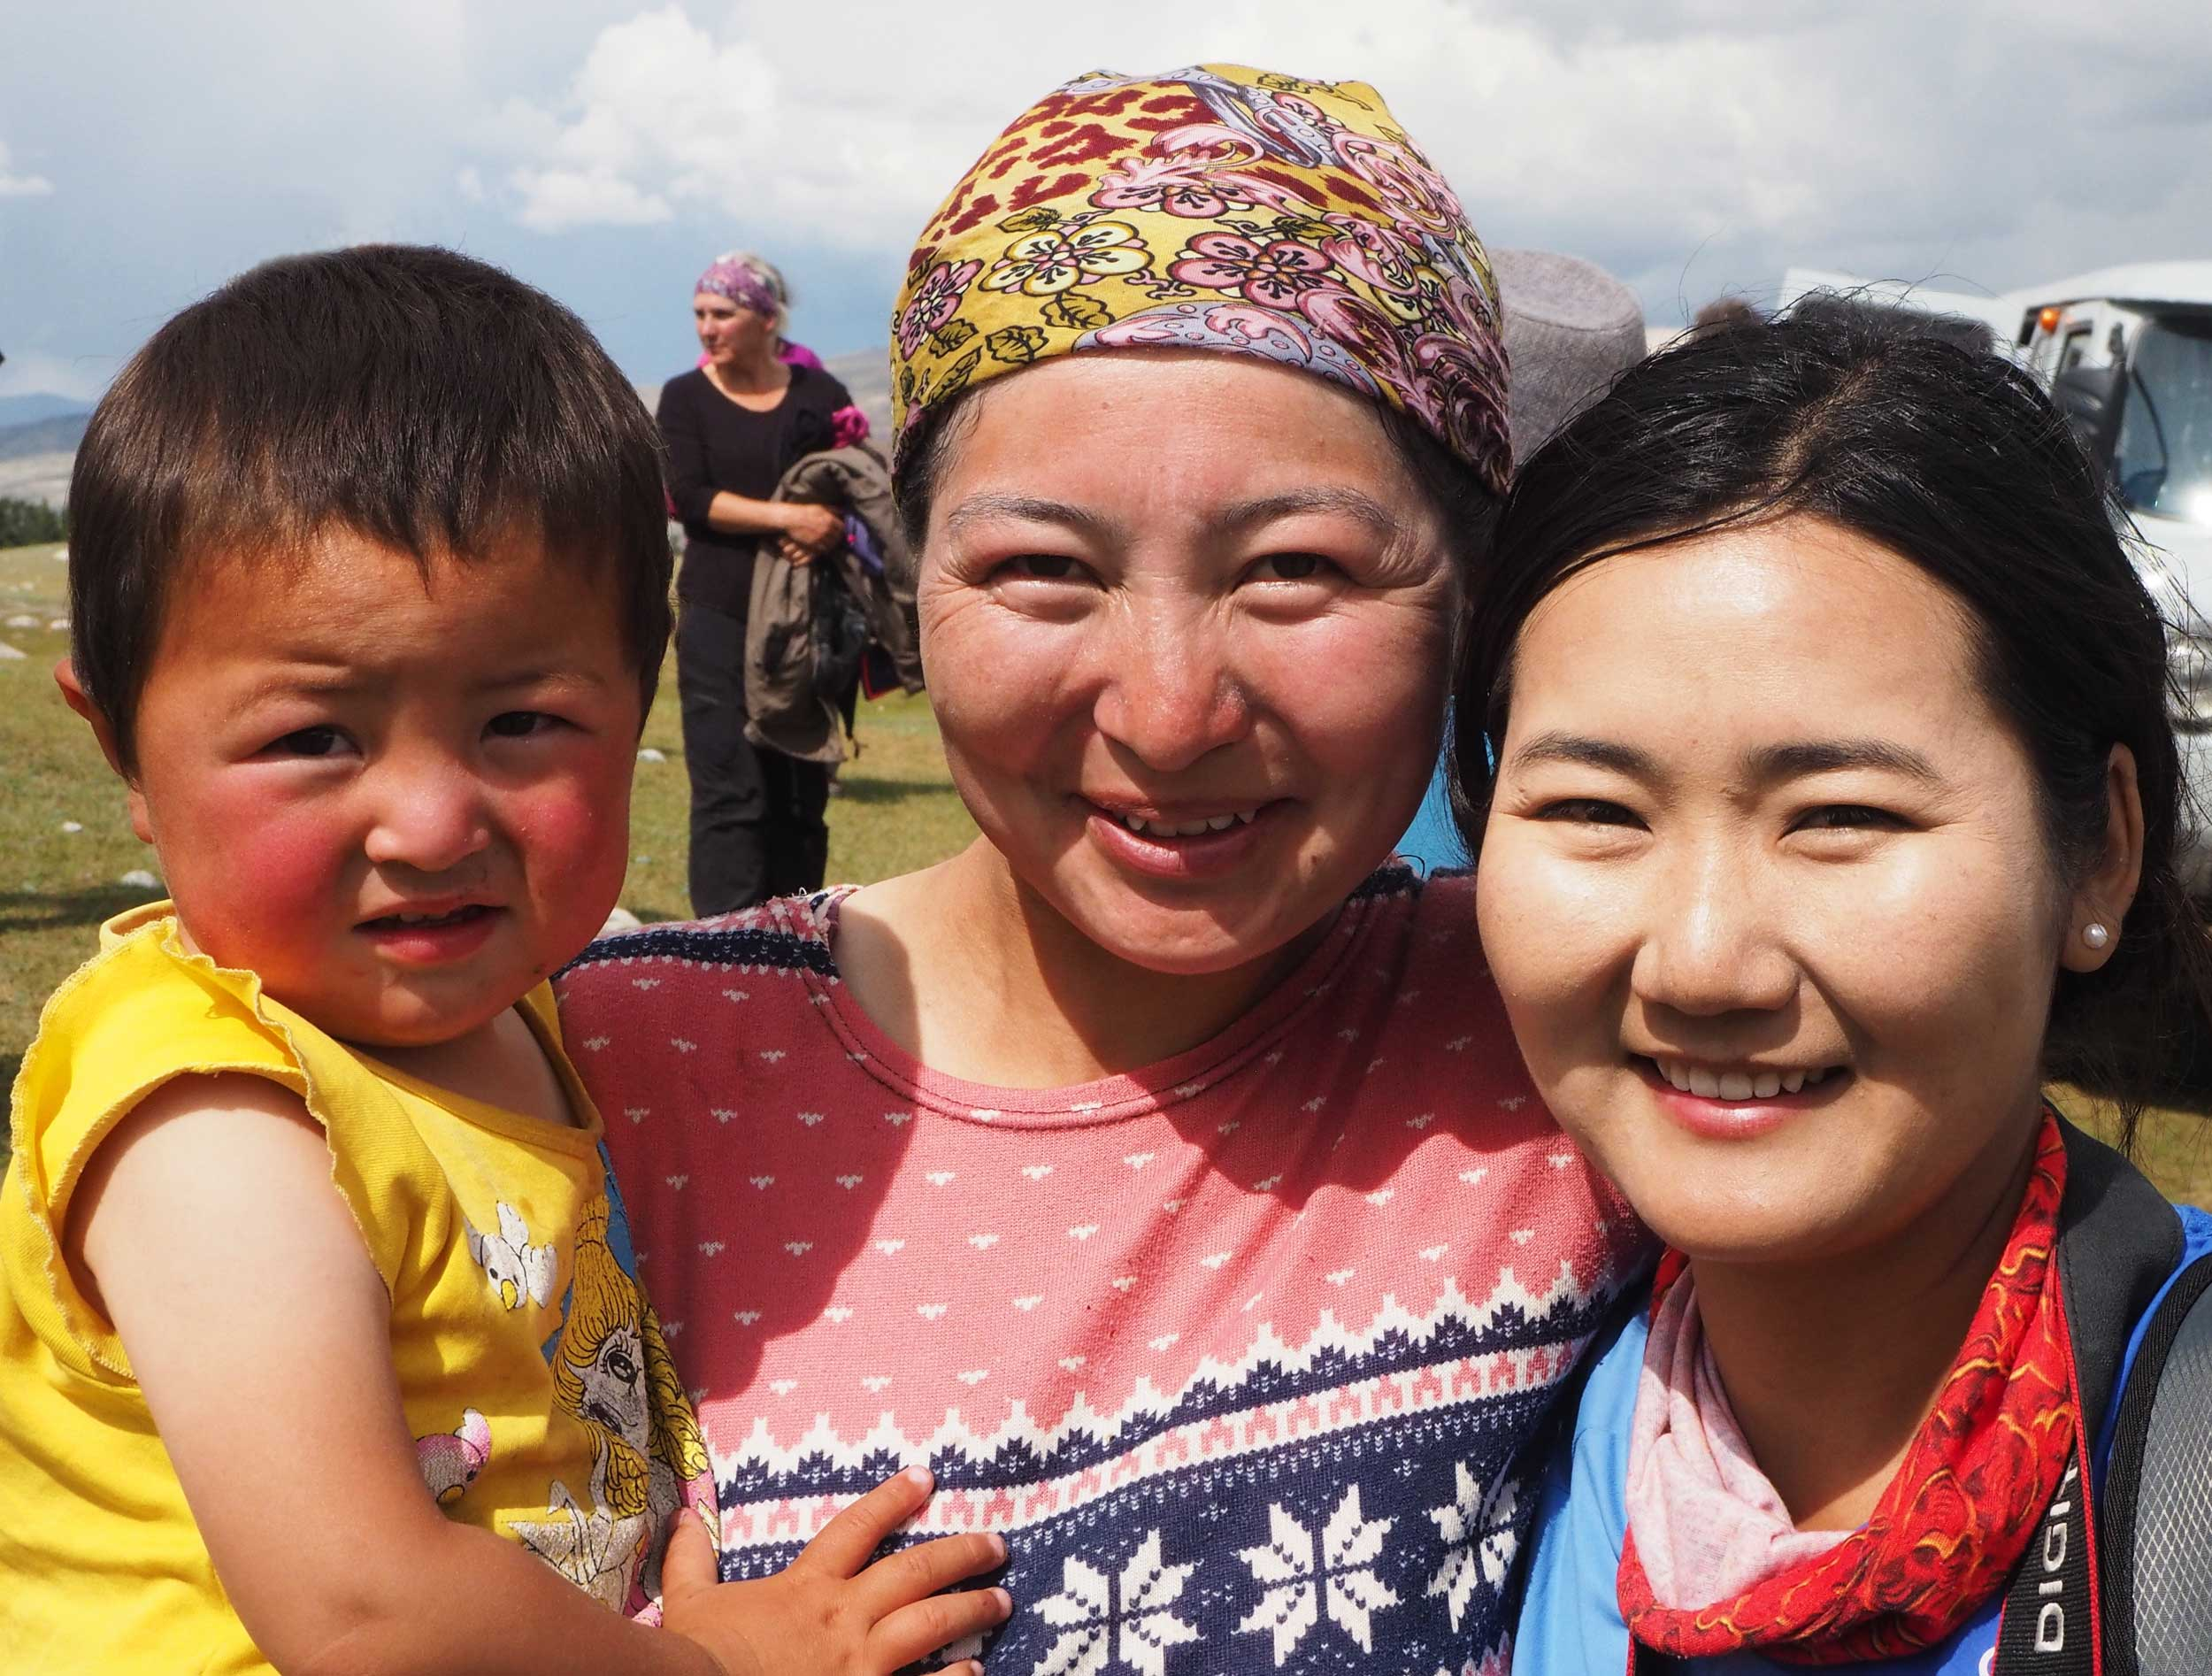 Two smiling Mongolian women with baby